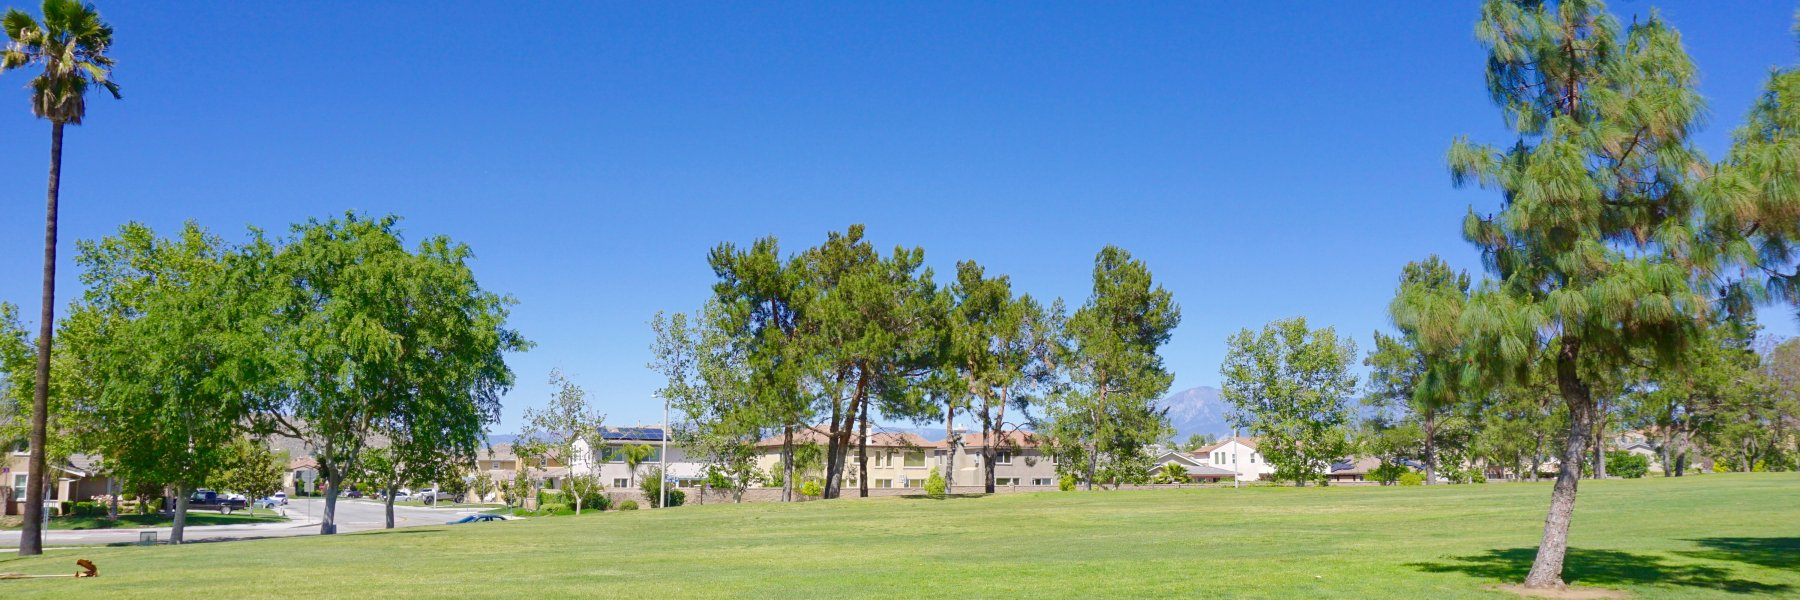 Moreno Valley Ranch is a community of homes in Moreno Valley California